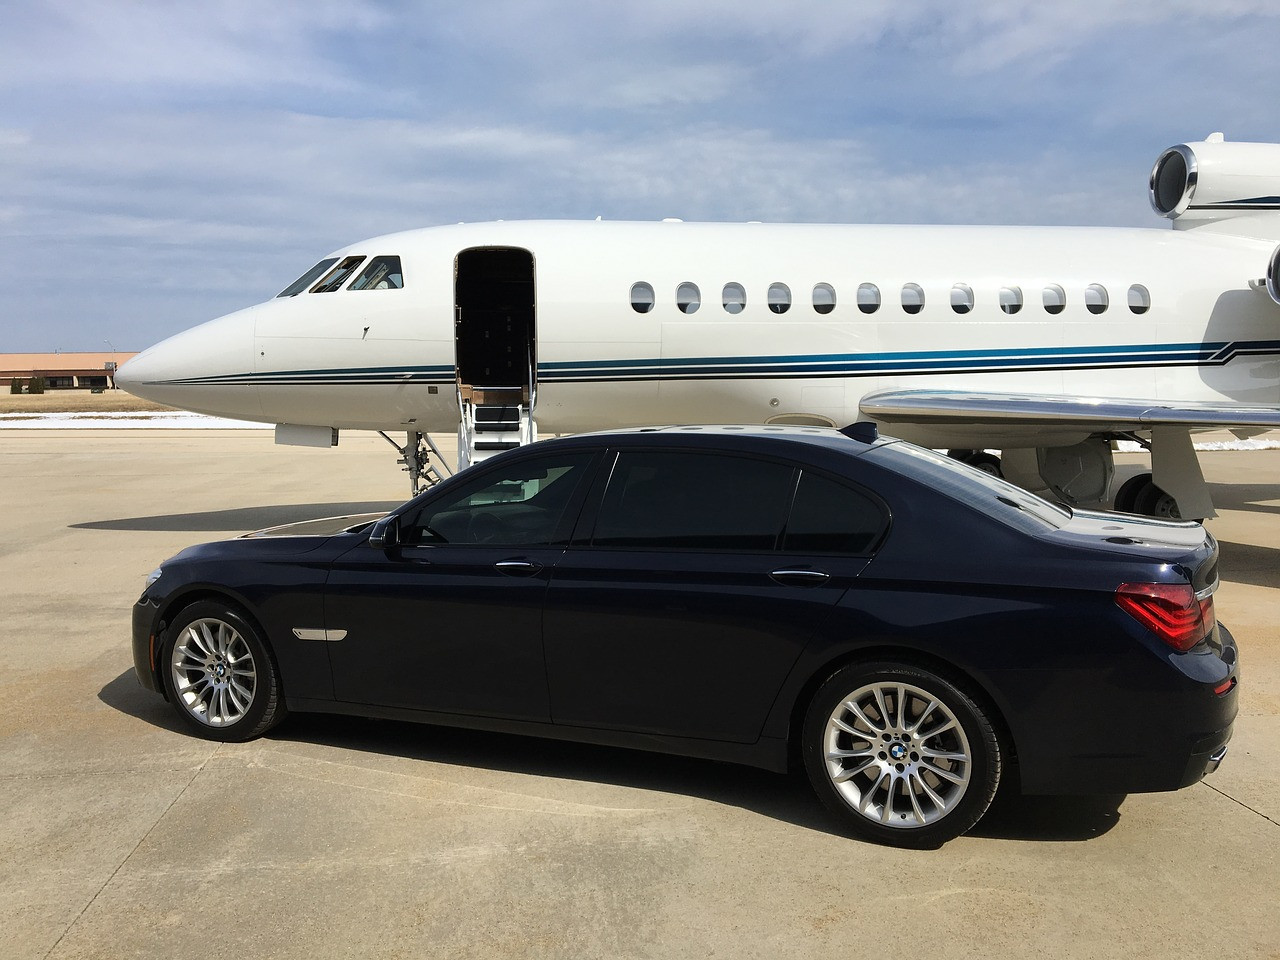 Magellan Jets is a Boston-based private aviation solution provider